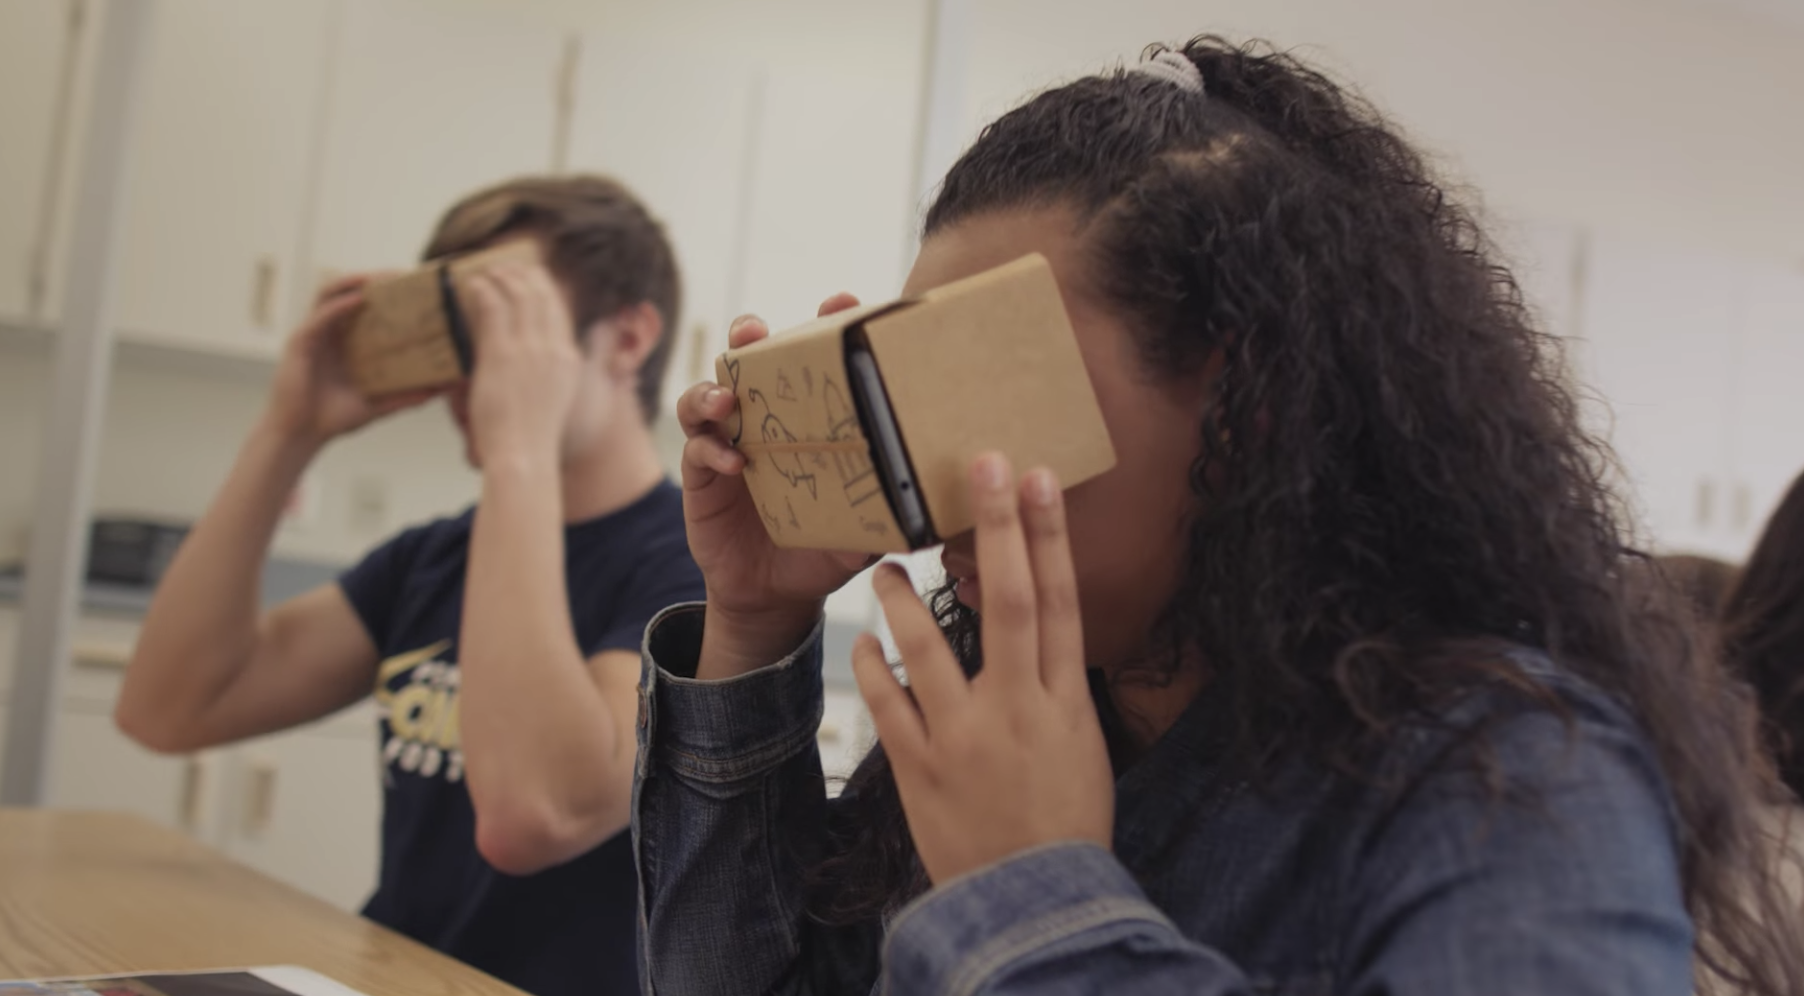 Google Tour Creator lets students make own VR tour